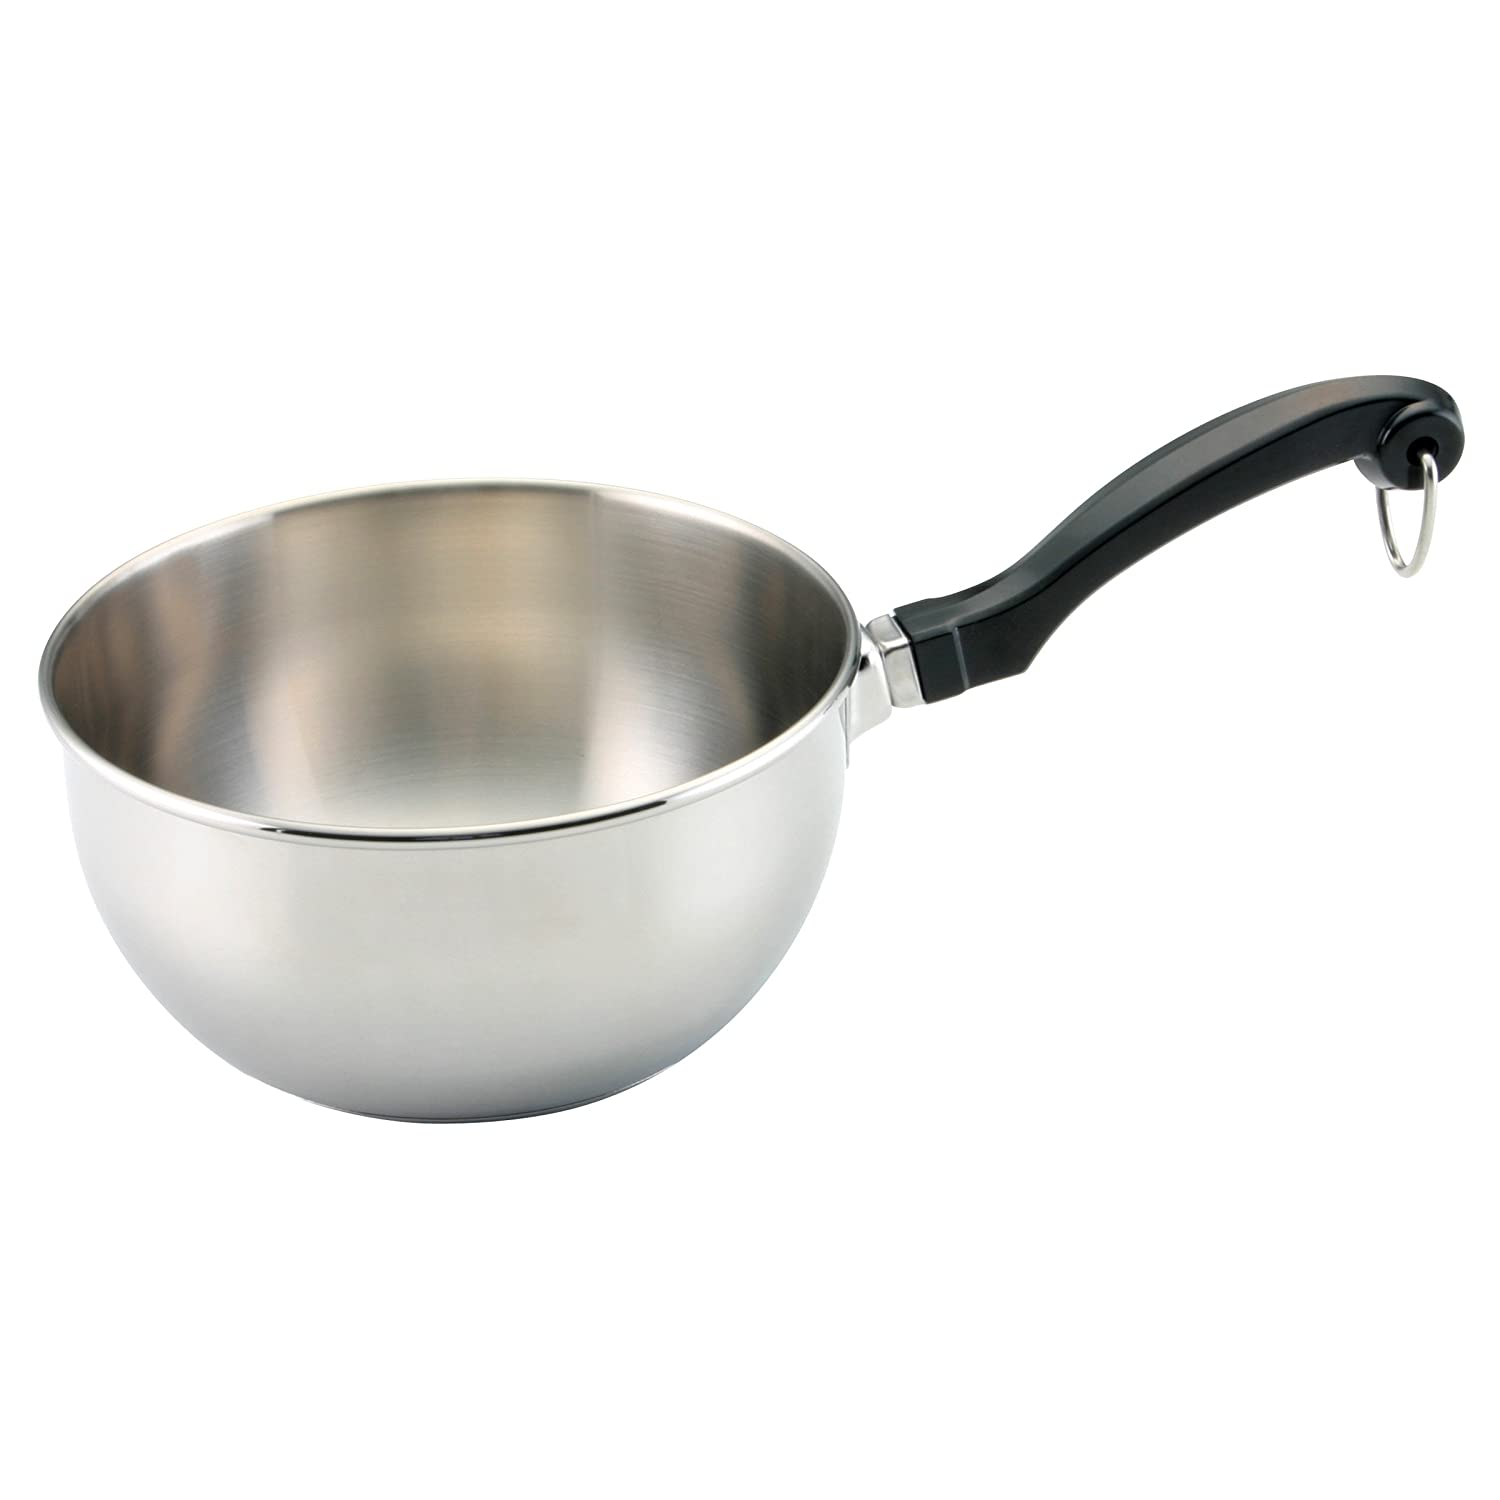 Farberware Classic Stainless Steel 1-1/2-Quart Open Sauce Pan 71225